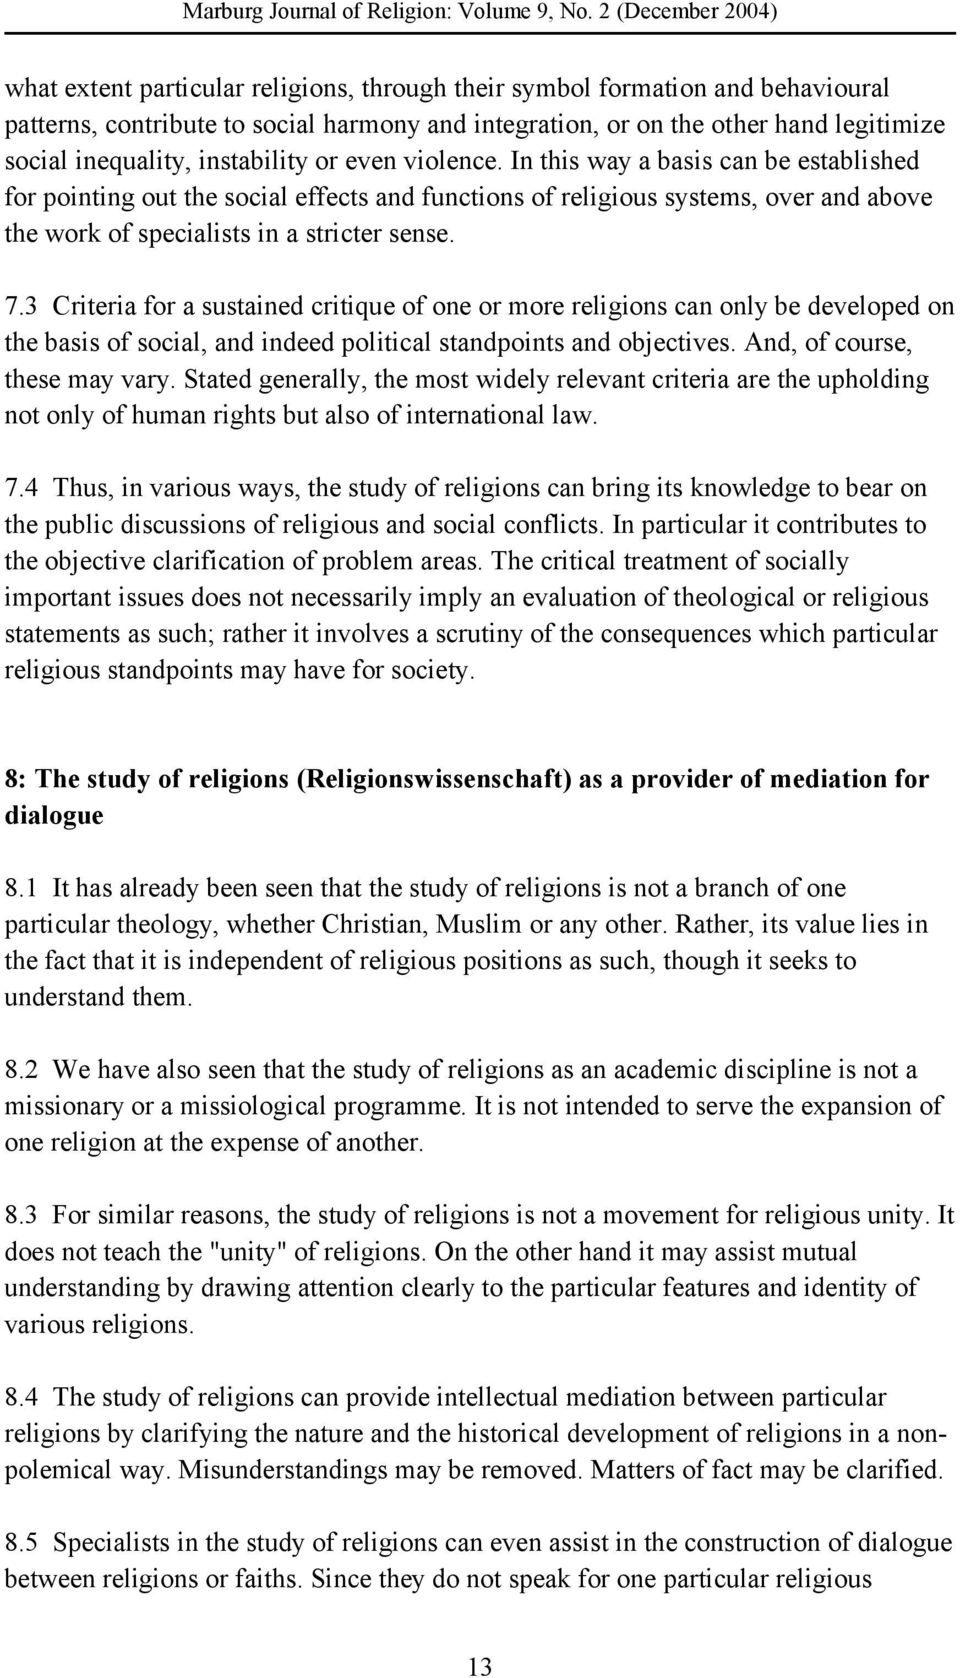 3 Criteria for a sustained critique of one or more religions can only be developed on the basis of social, and indeed political standpoints and objectives. And, of course, these may vary.